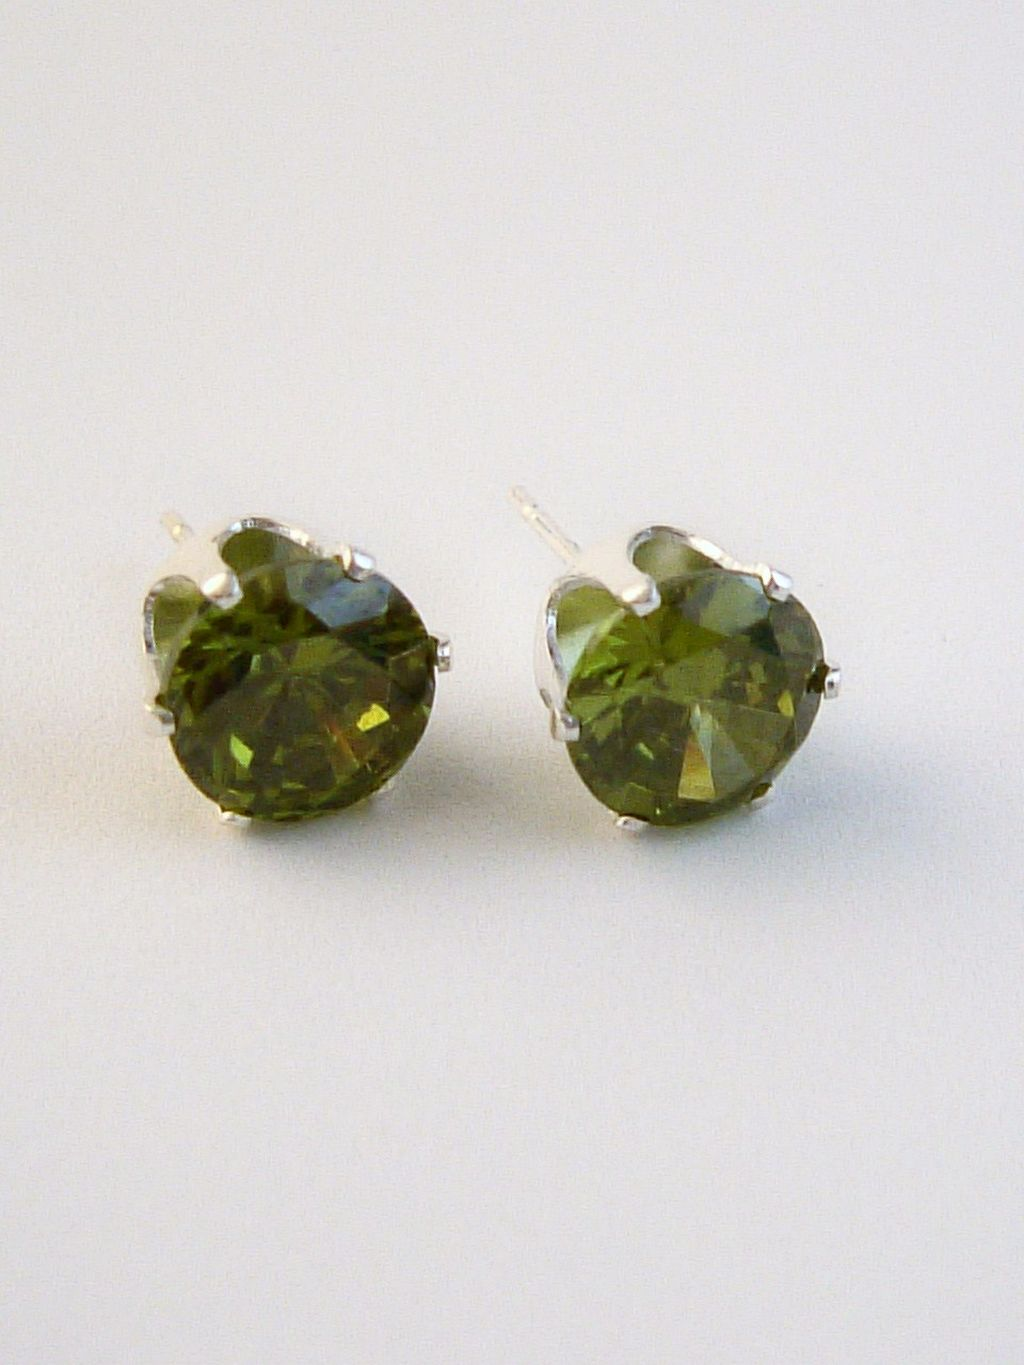 Peridot Round Cut Silver Stud Earrings Genuine CZ Cubic Zirconia